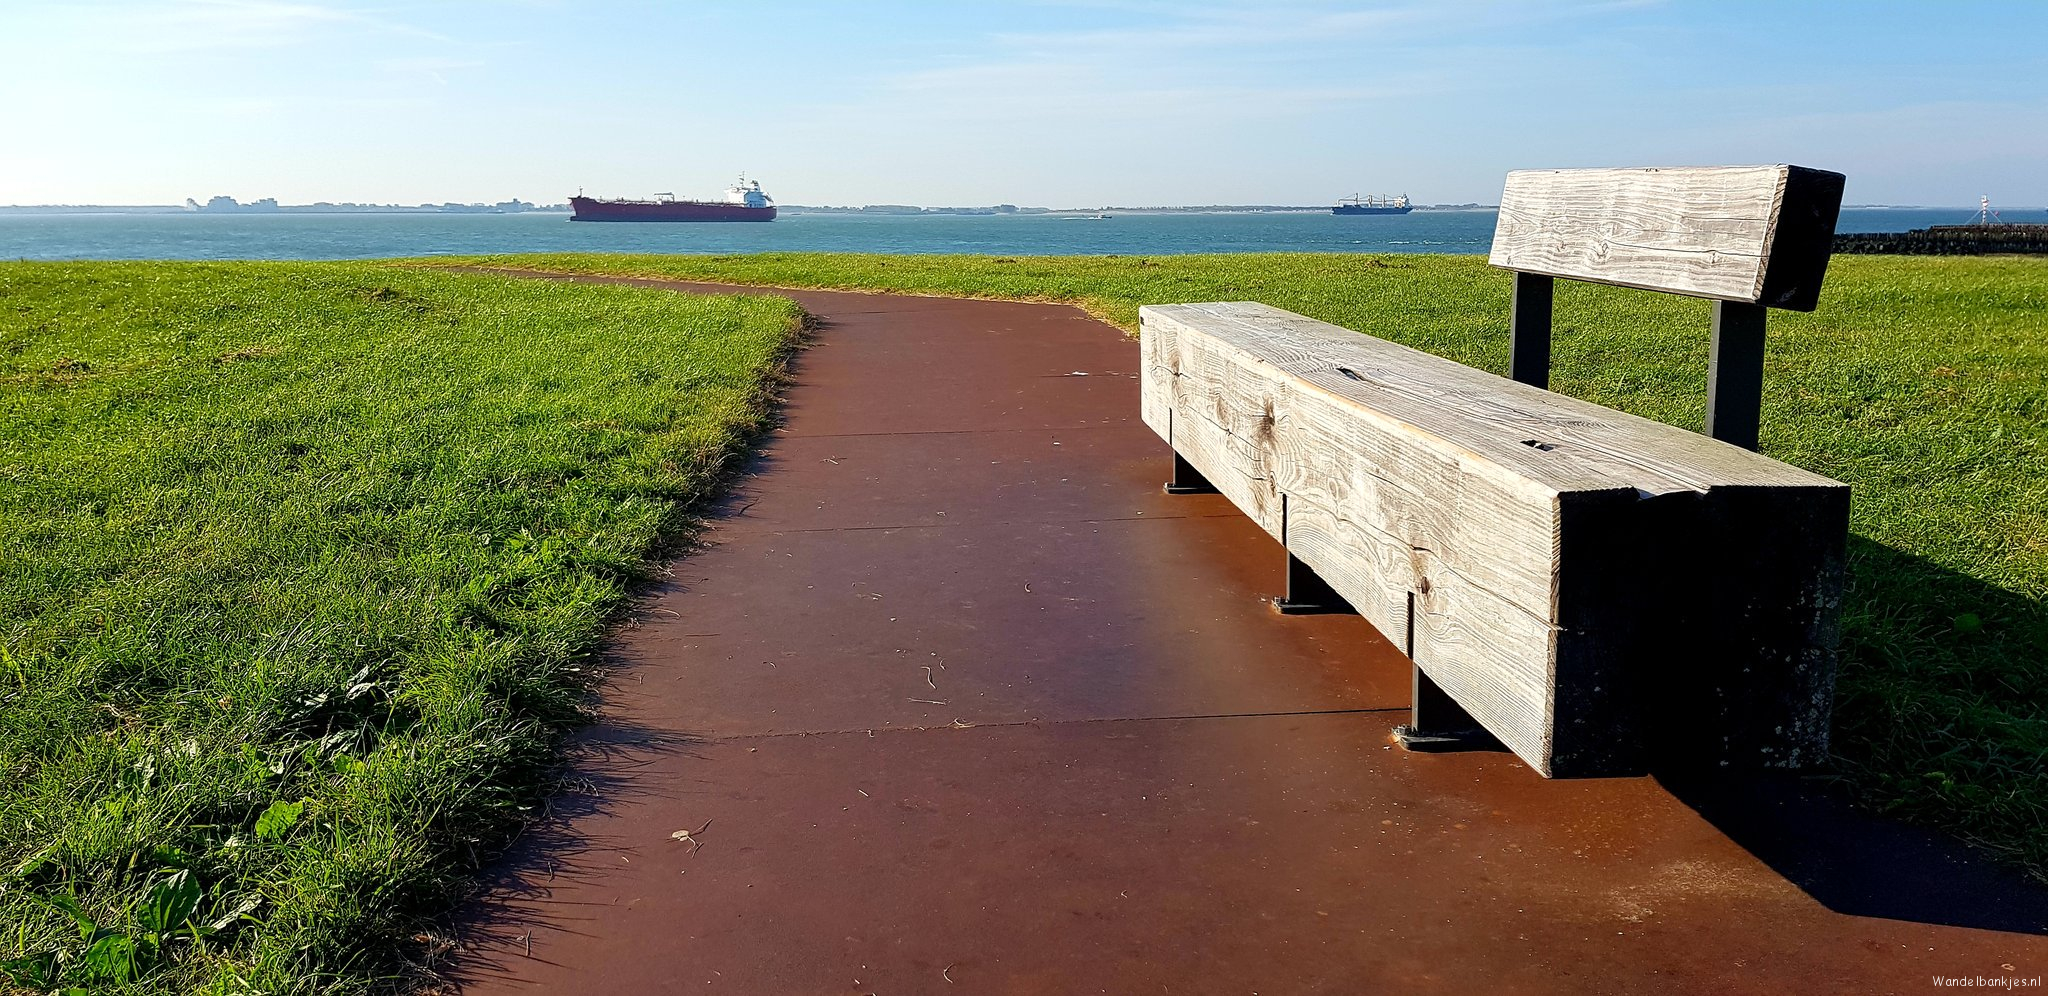 rt-hansterheijne-wandelbankjes-walkersbenches-myfavebench-vlissingen-zeeland-nederland-netherlands-https-t-co-dgl9rny3lg